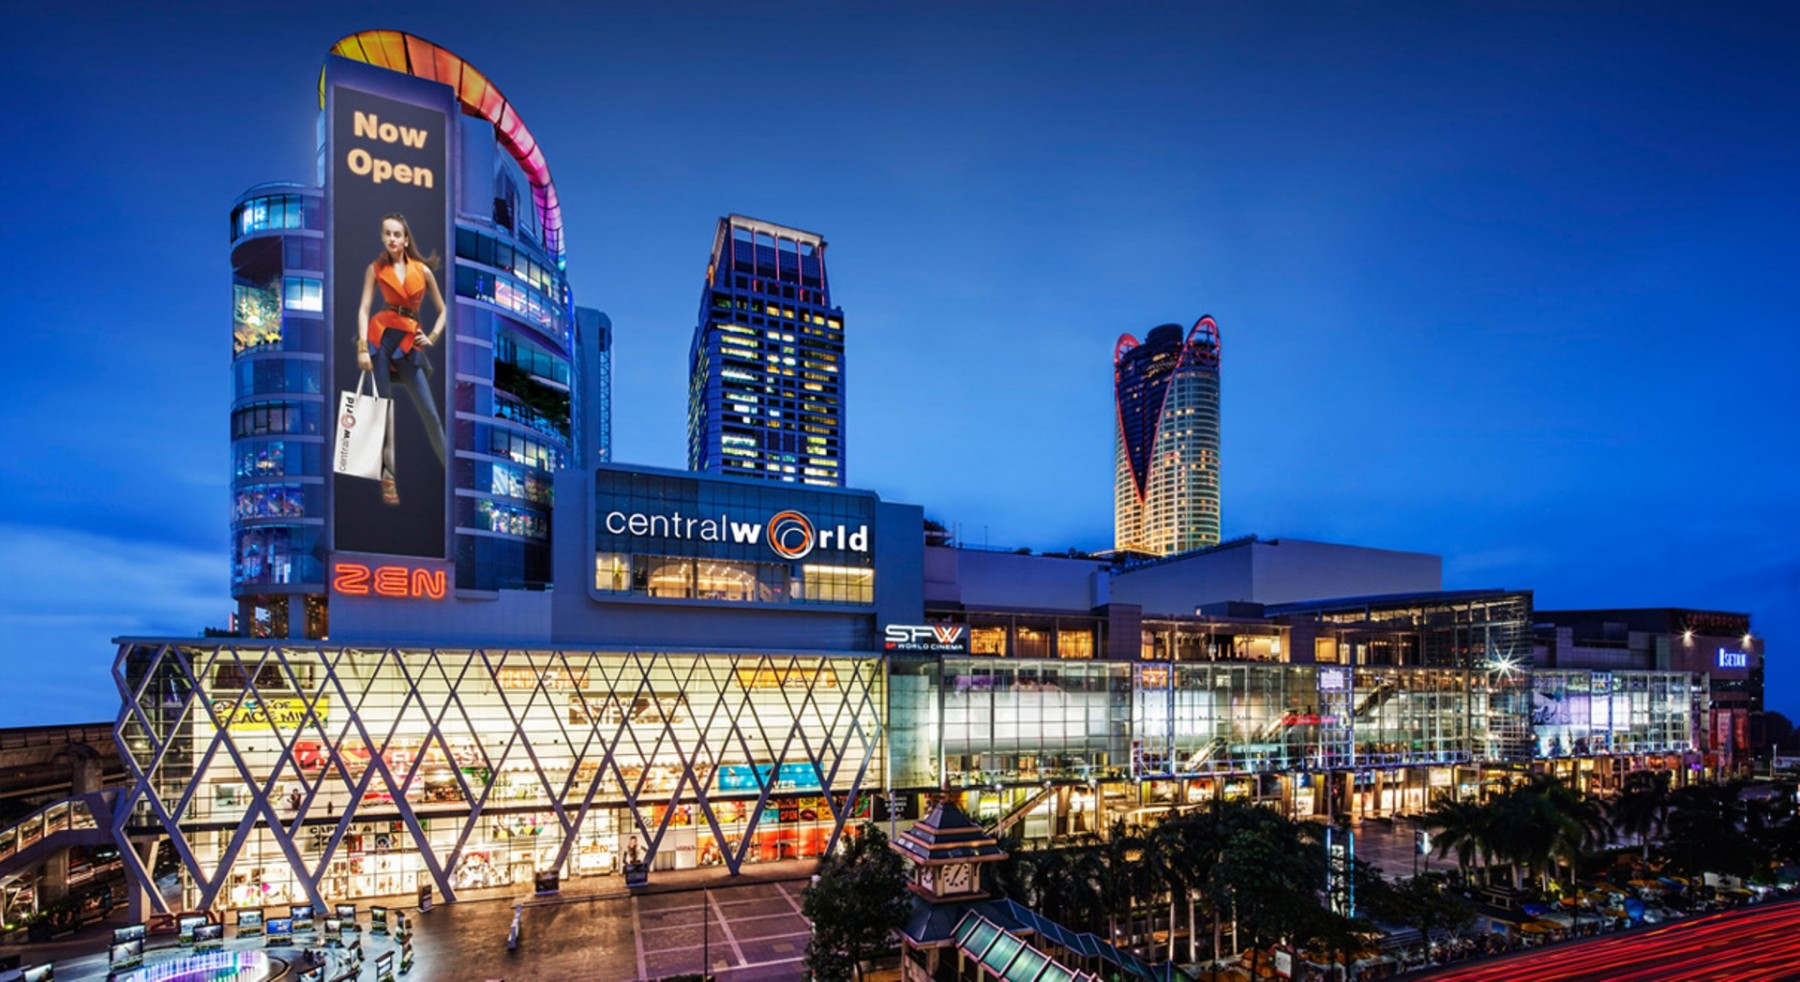 centralworld best shopping malls in bangkok top shopping malls in bangkok bangkok shopping guide